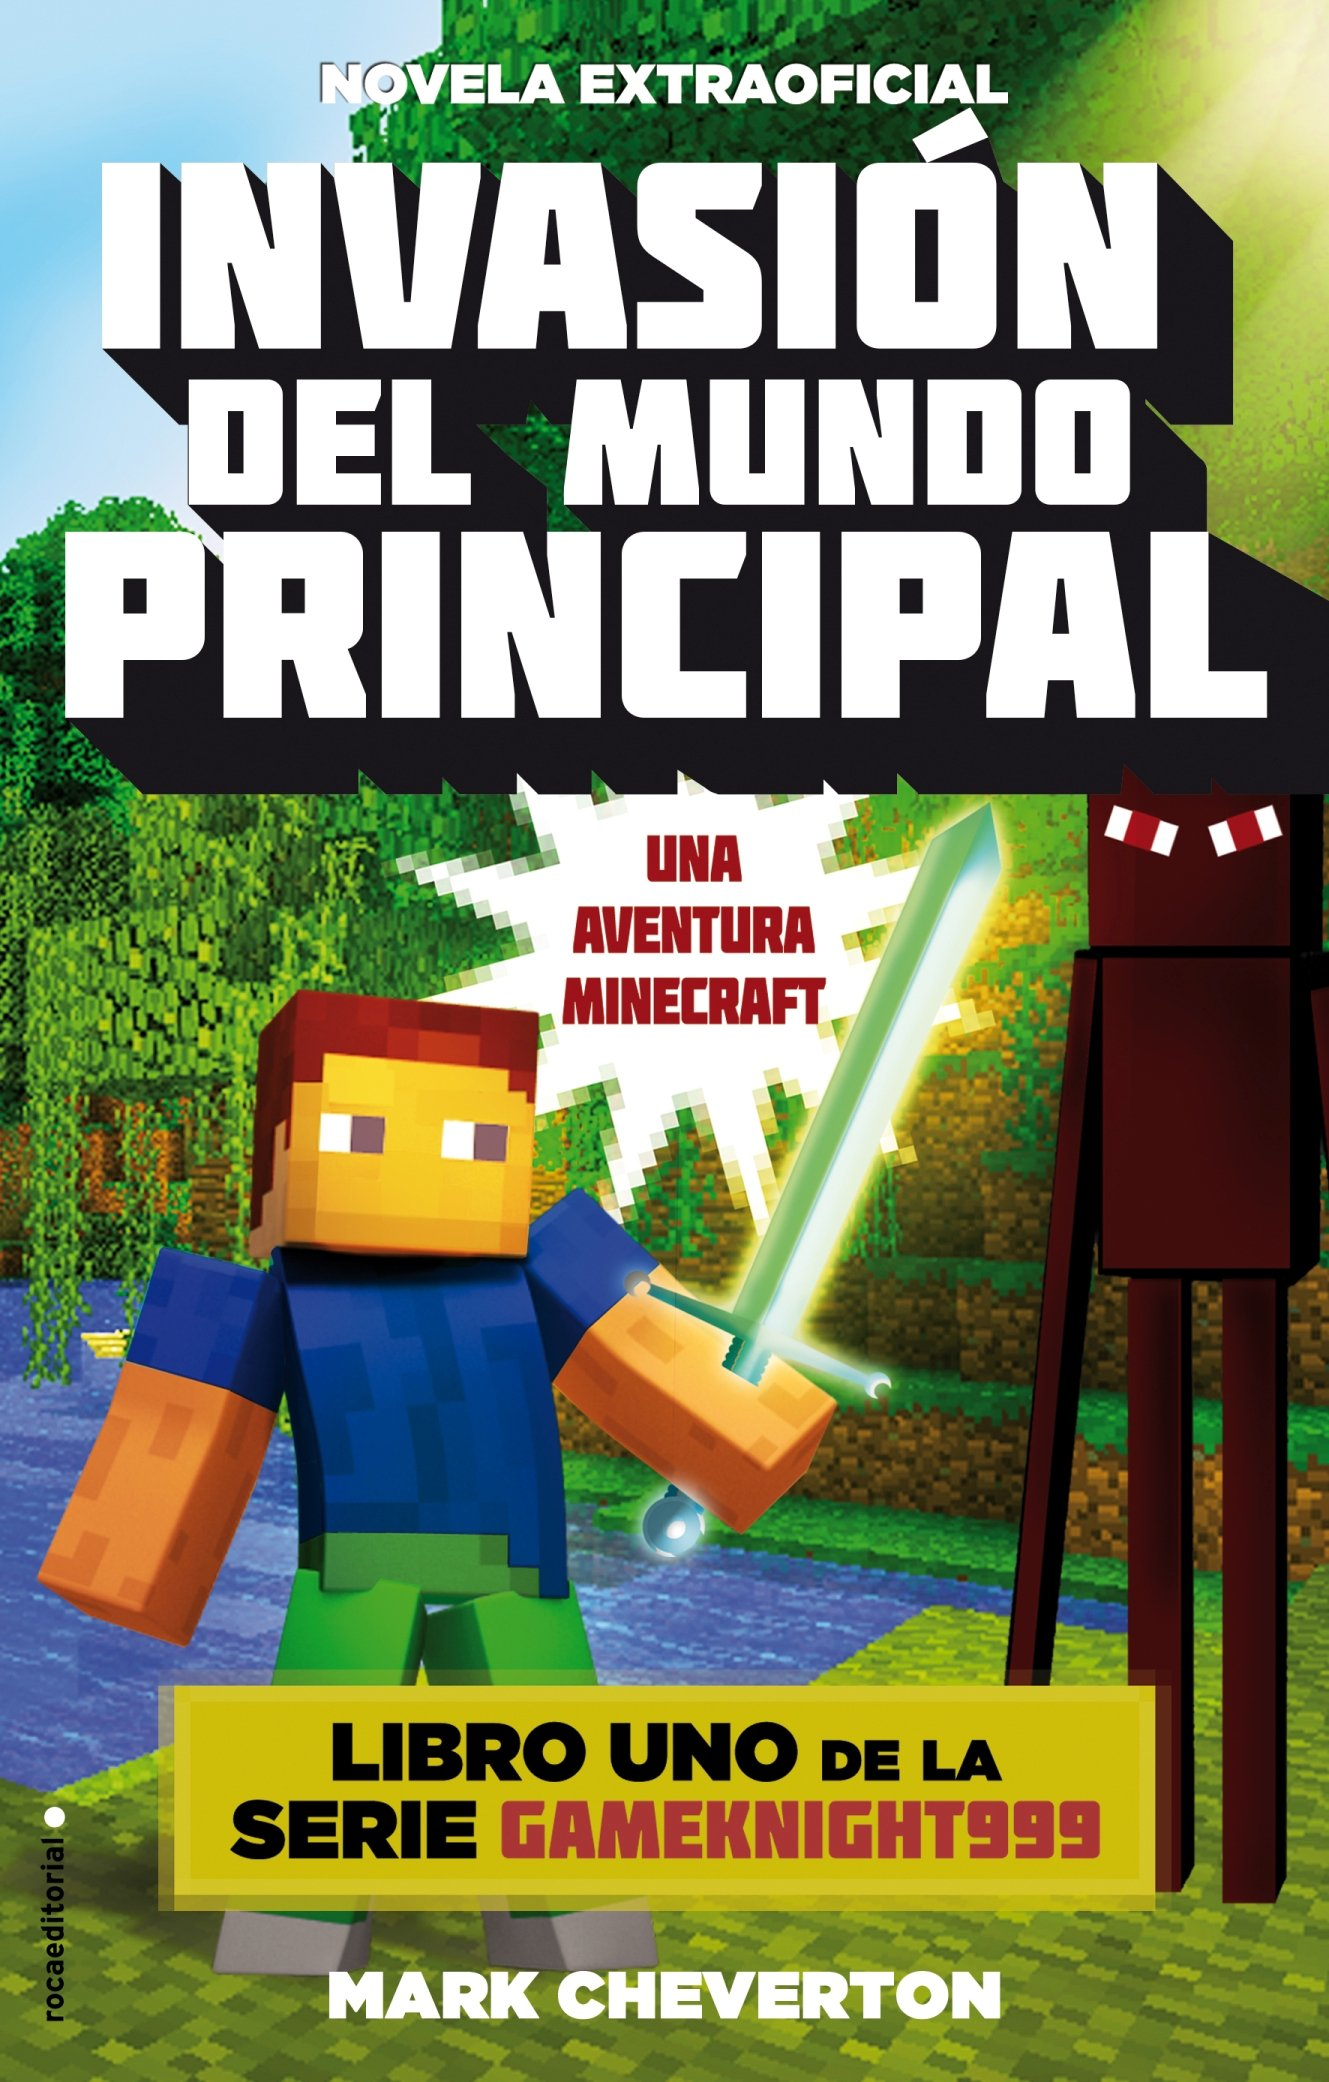 Invasión del mundo principal: Una aventura Minecraft Junior - Juvenil roca: Amazon.es: Mark Cheverton, Elia Maqueda: Libros